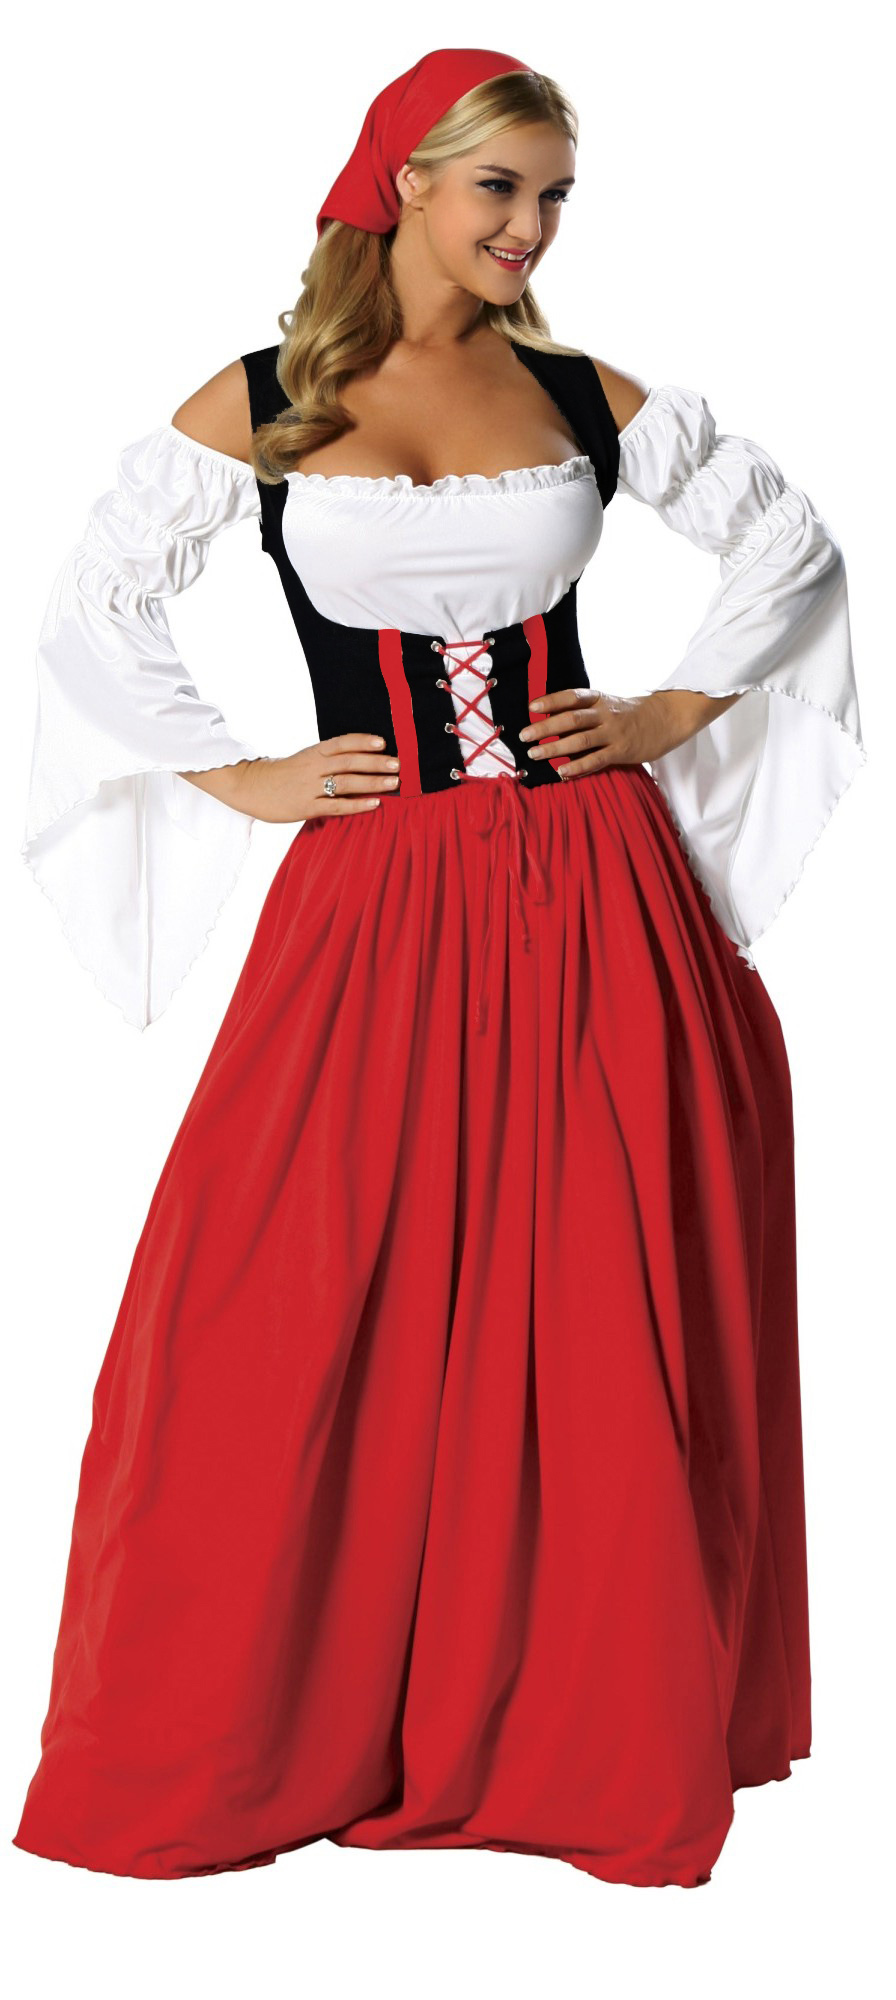 Swiss Miss Oktoberfest Costume, Swiss Miss Costume, German Beer Girl Wench Oktoberfest Costume, Maxi Oktoberfest Dress, Red-white Maxi Oktoberfest Costume#N5979